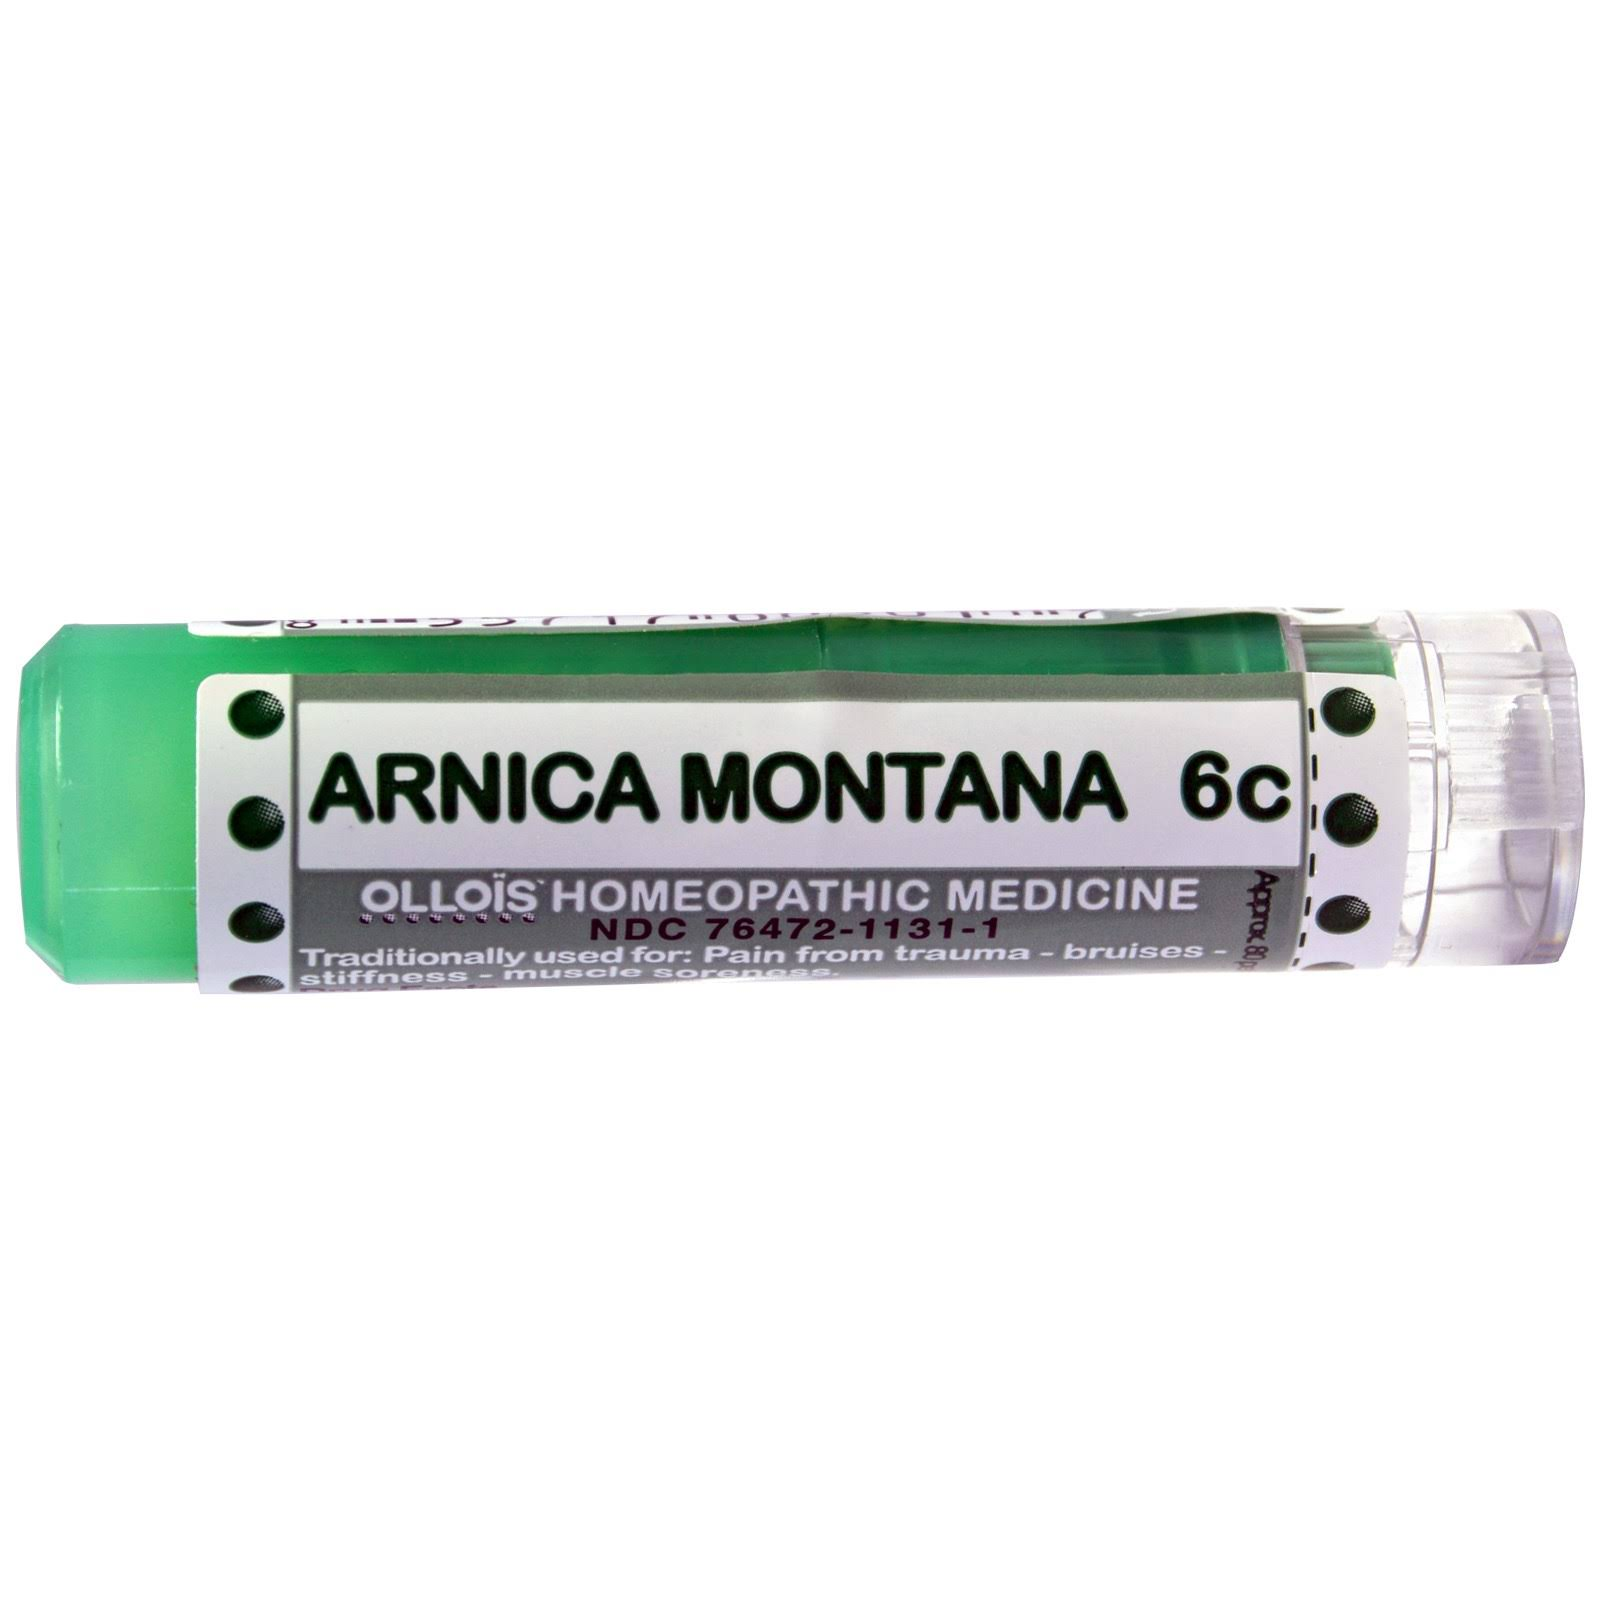 Ollois Homeopathic Medicine Arnica Montana 6c Pellets